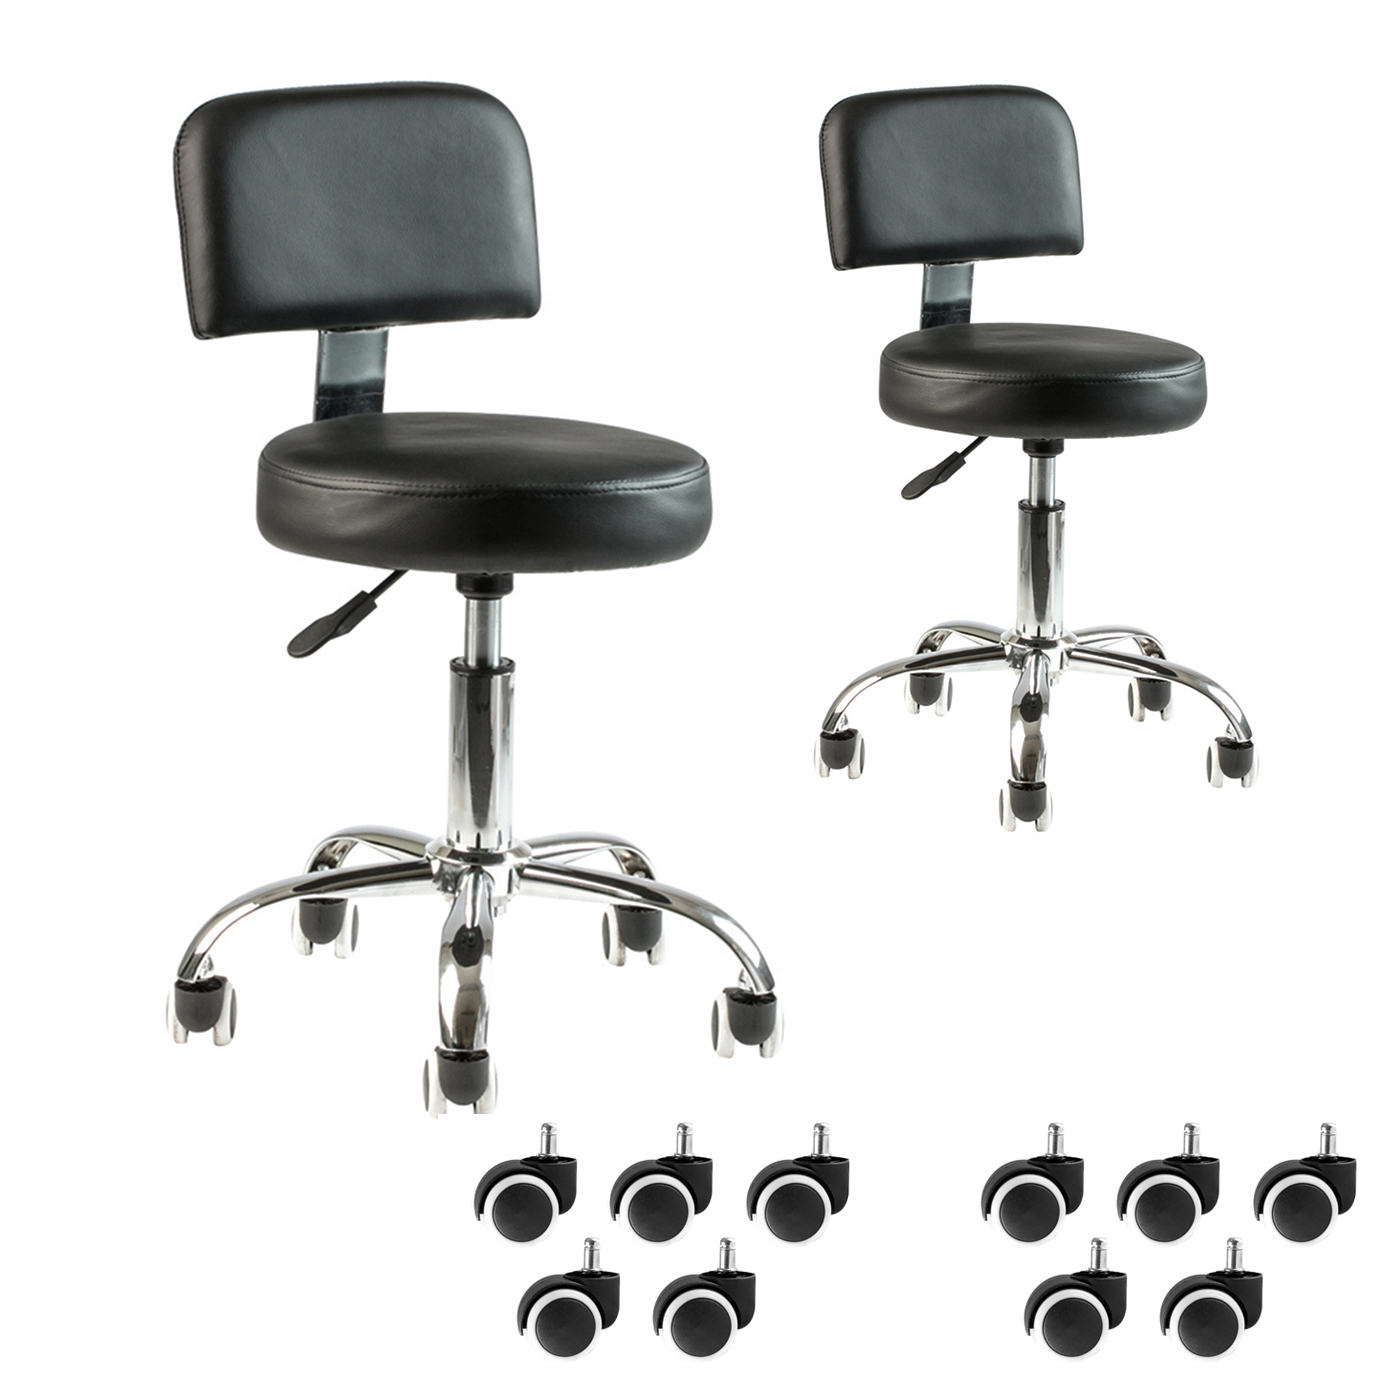 chair stool with footrest power companies 2 black pedicure tattoo adjustable doctor